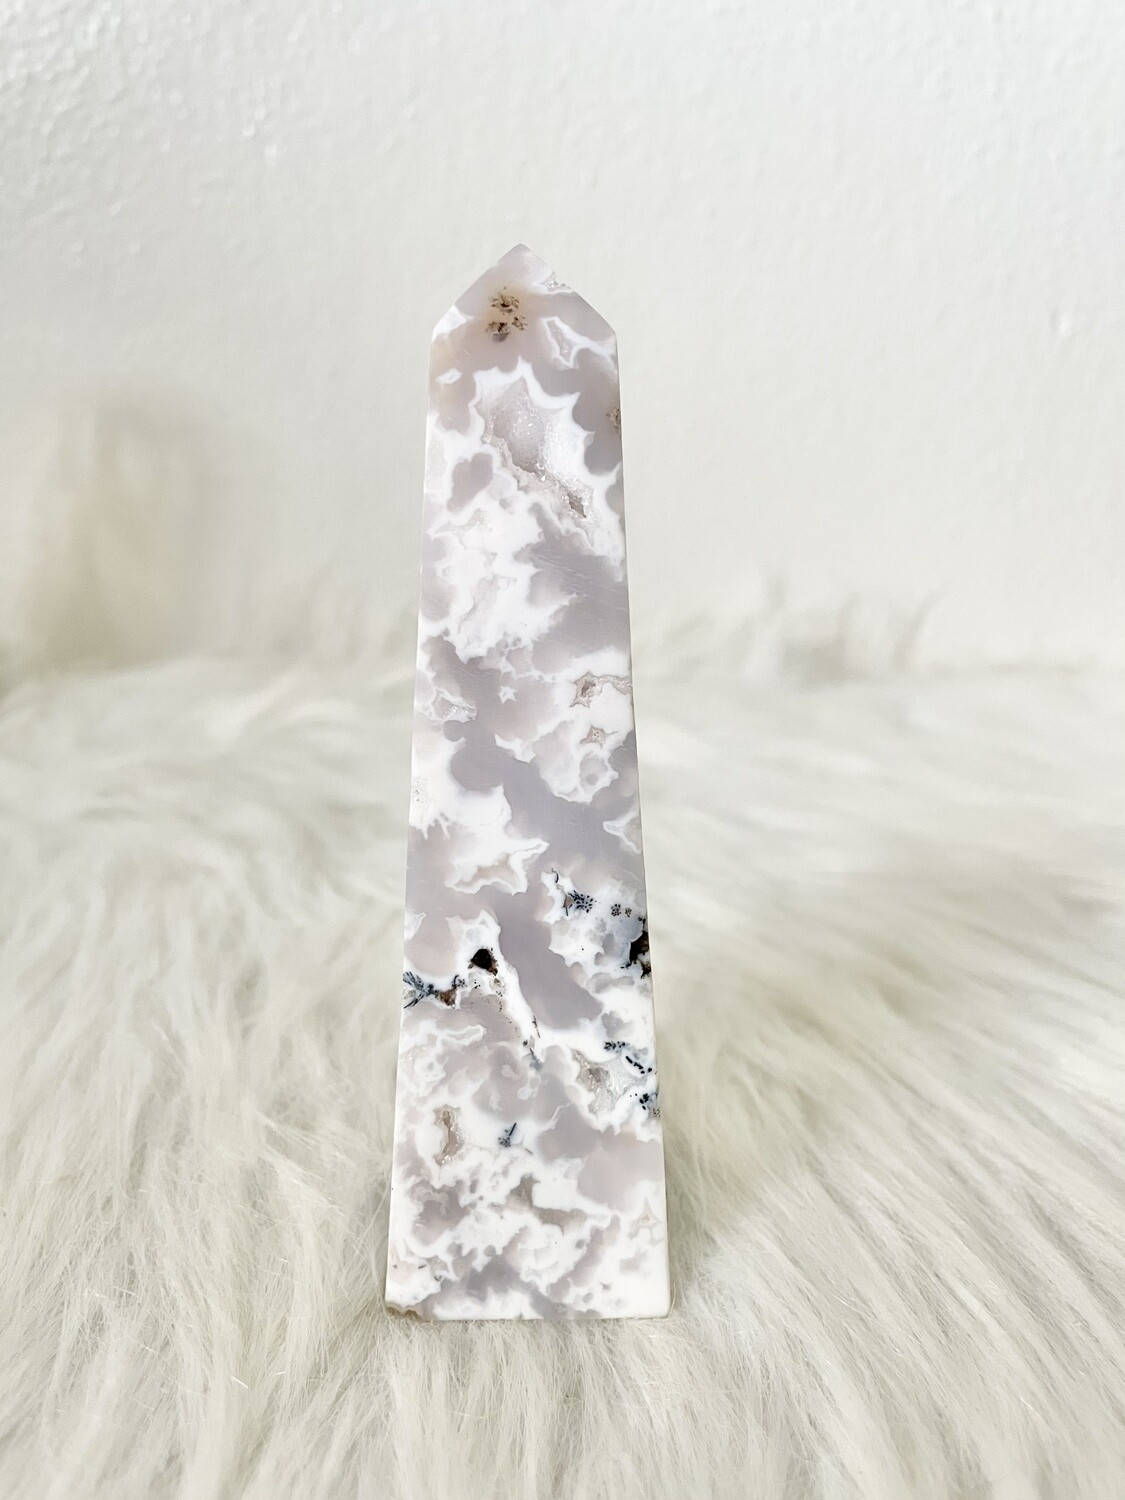 Pawprints White Lace Druzy Agate with Dendrites Tower